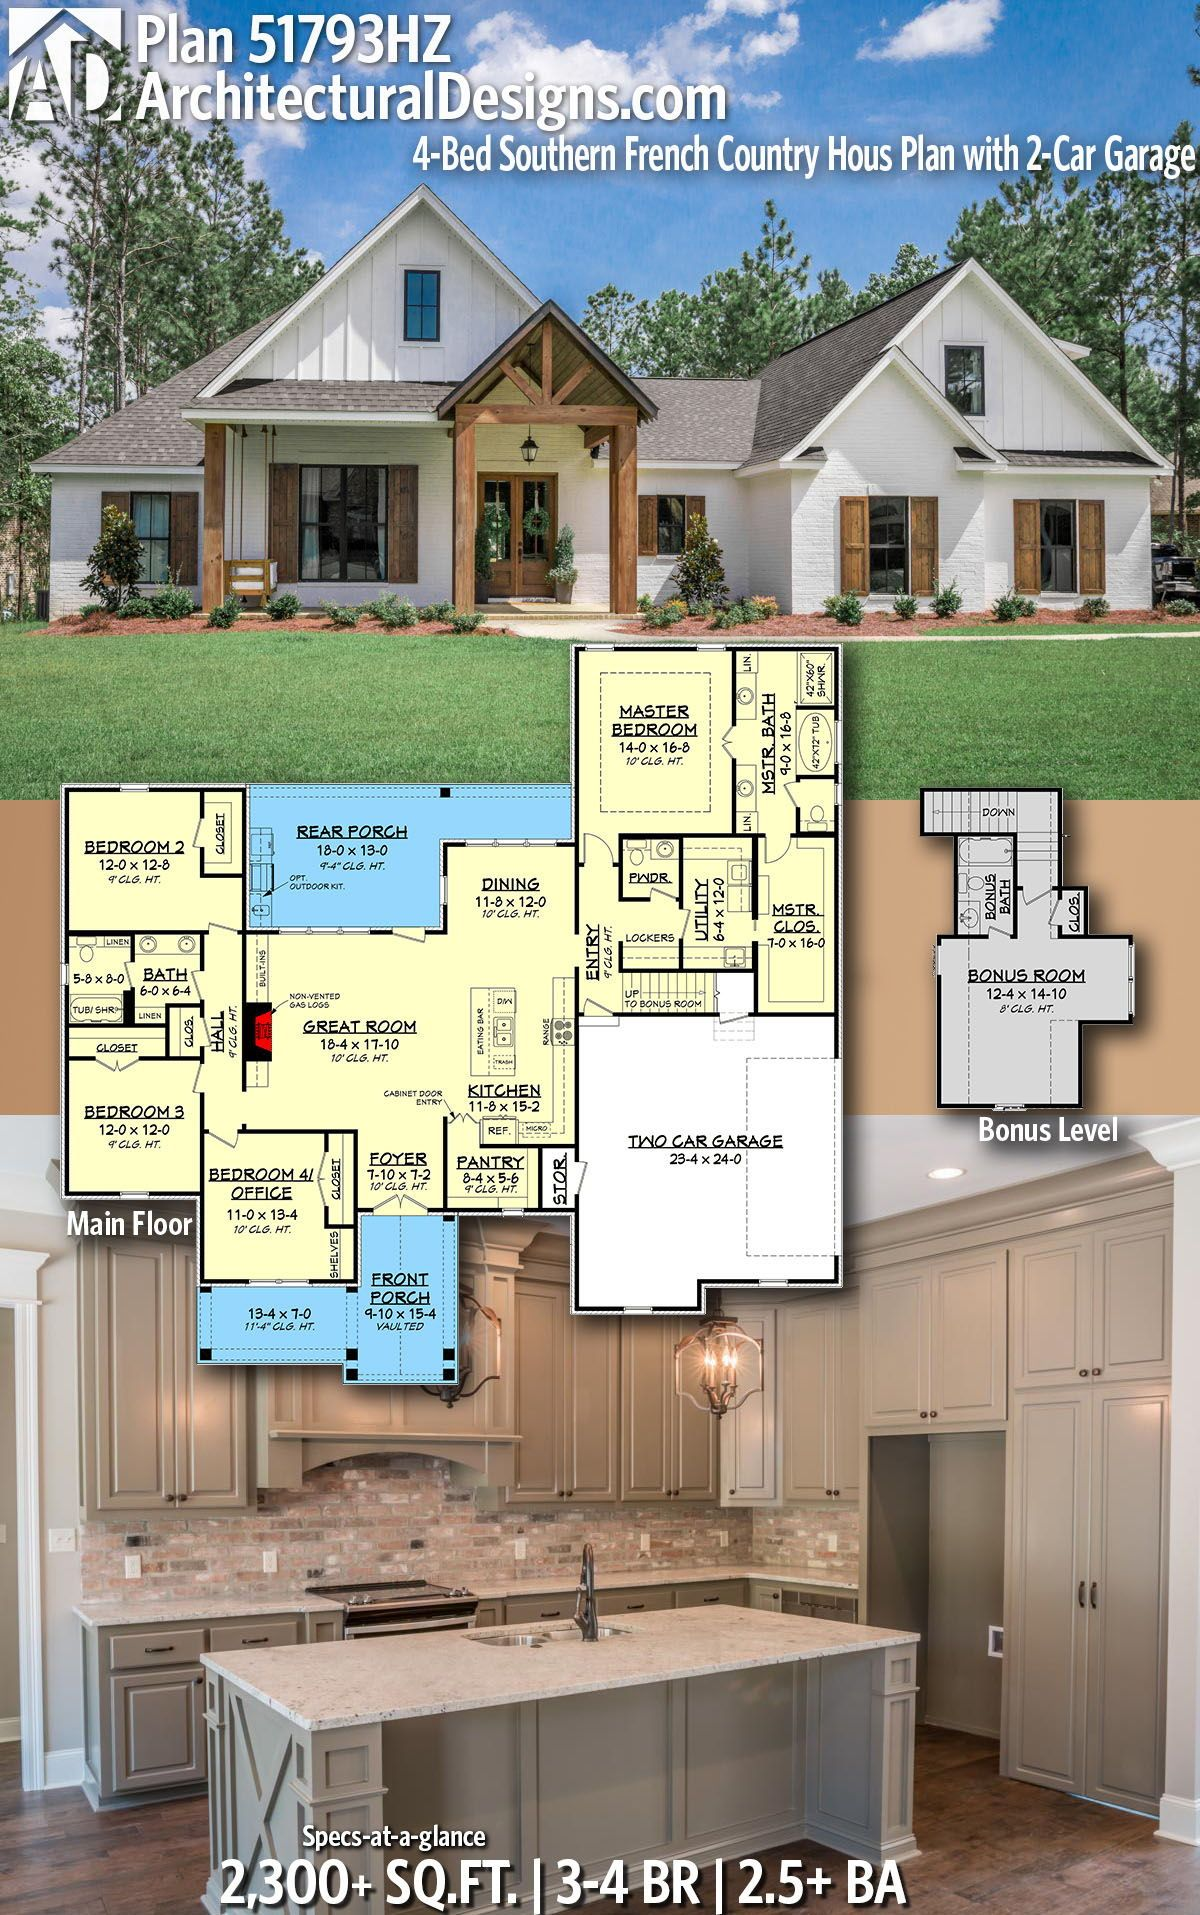 Architectural designs home plan hz gives you bedrooms baths and also rh ar pinterest